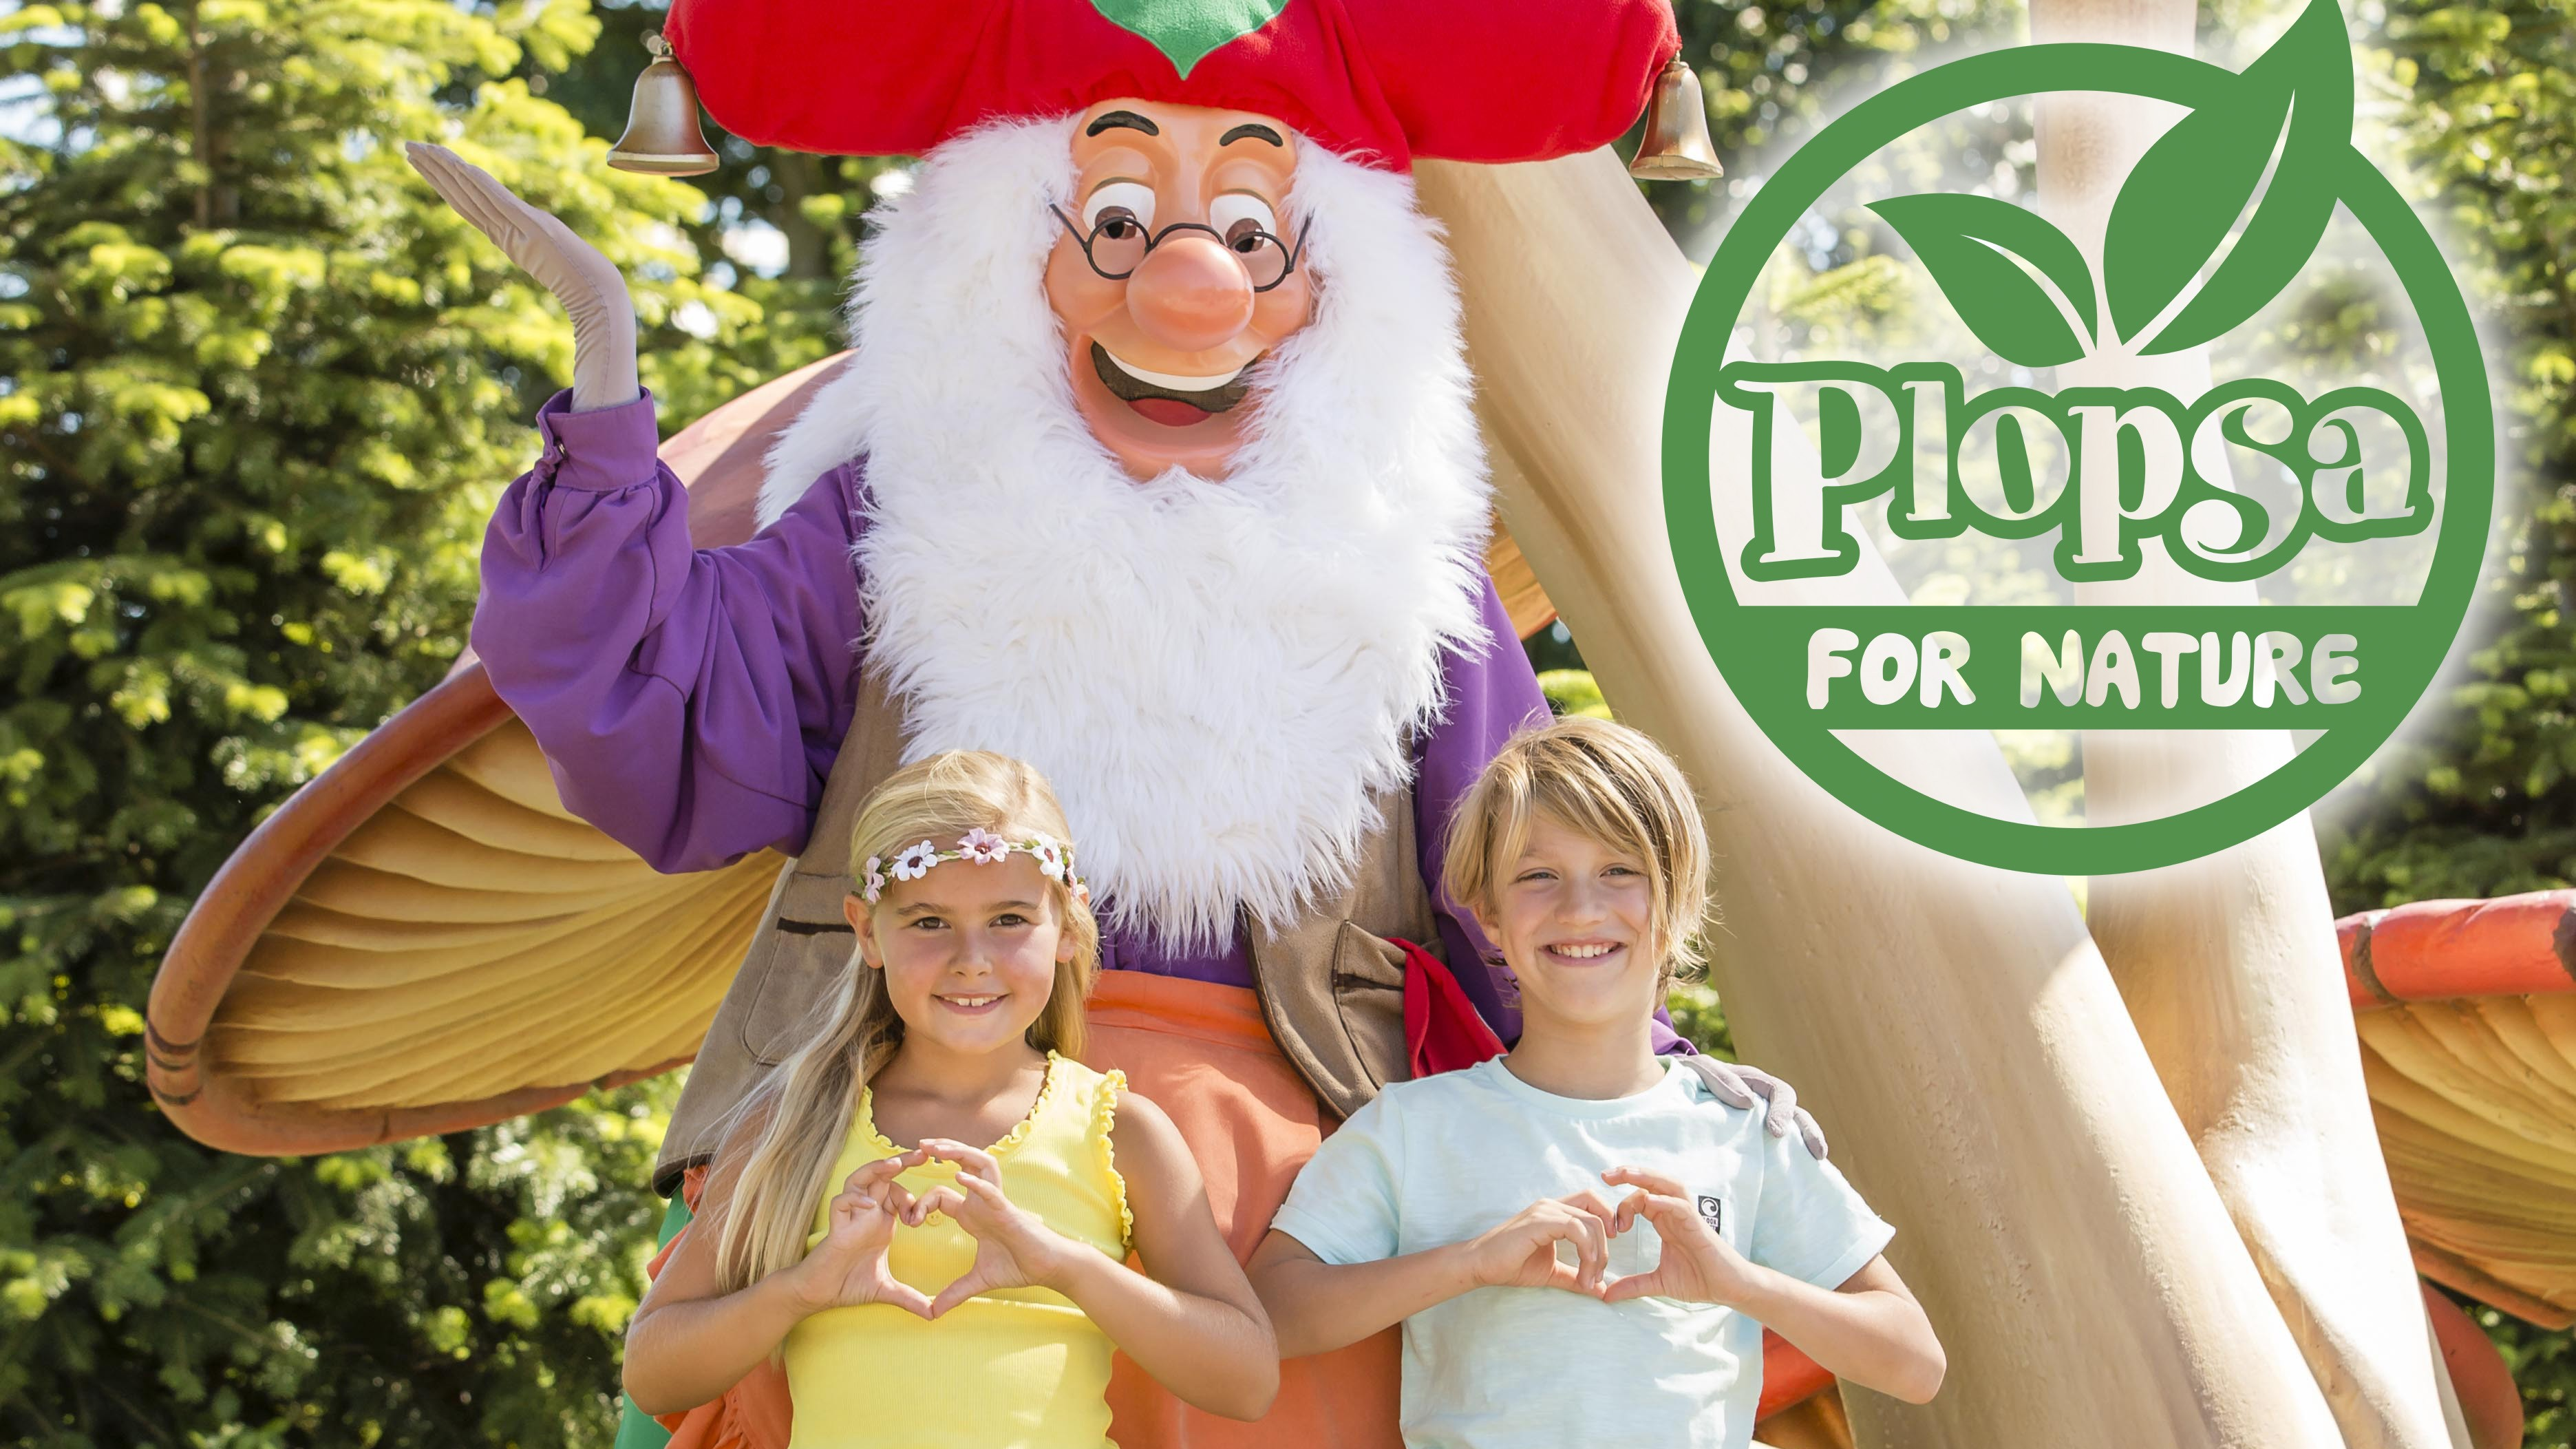 Plopsaland Premium Partner Plopsa for Nature